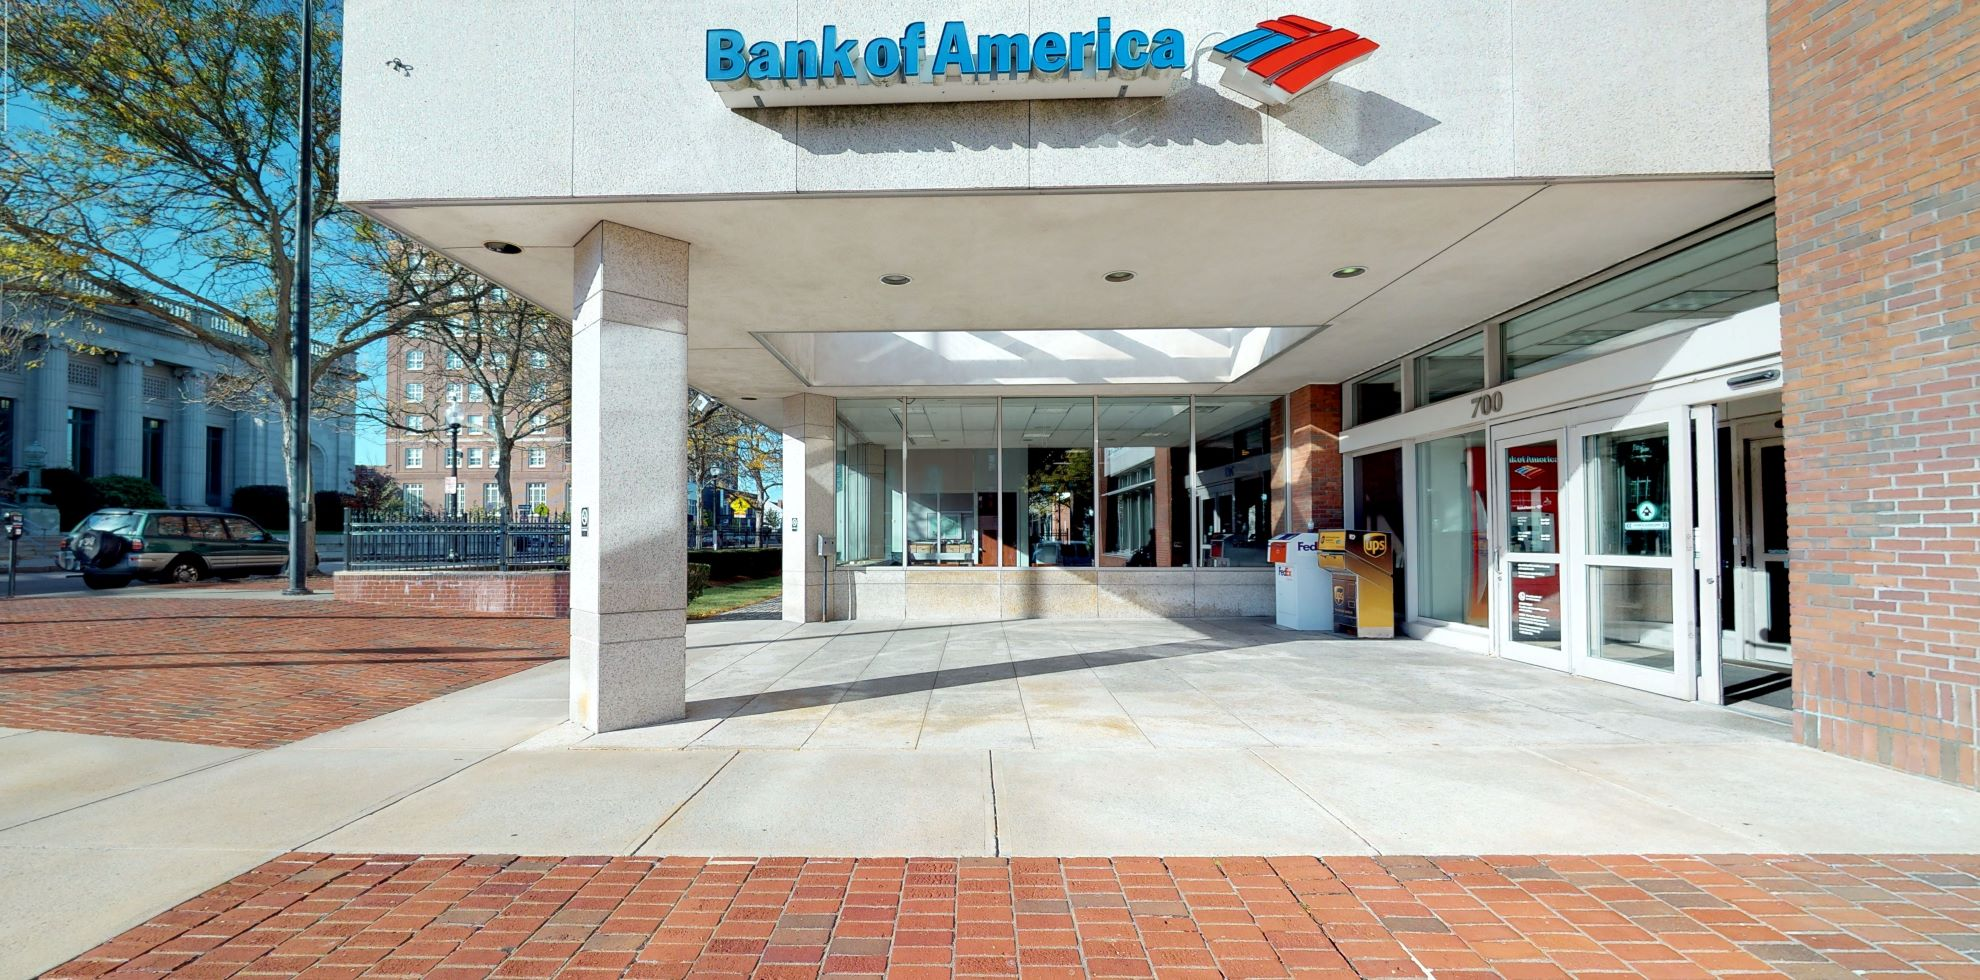 Bank of America financial center with drive-thru ATM and teller   700 Pleasant St, New Bedford, MA 02740